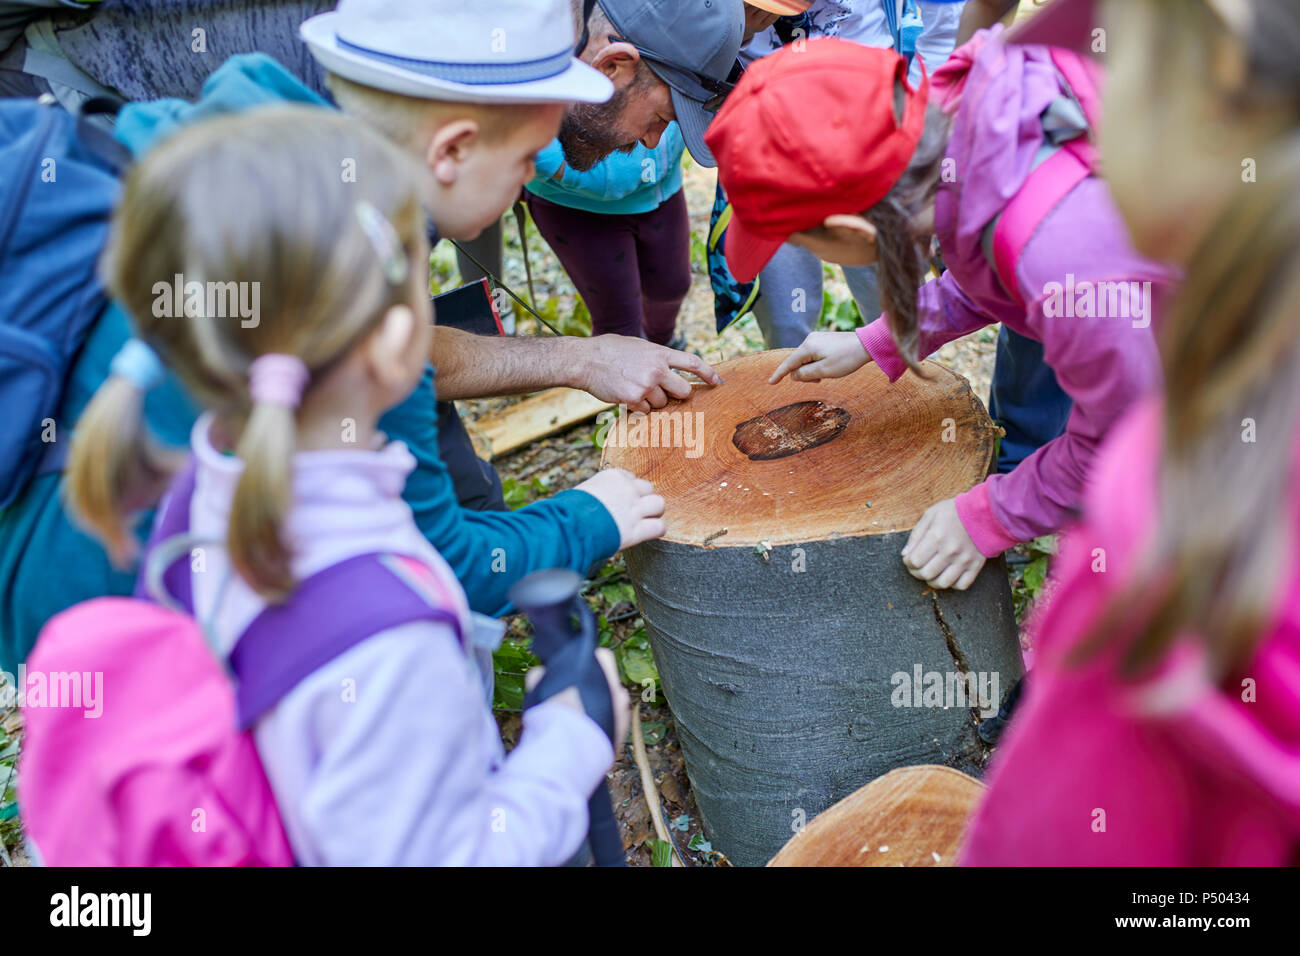 Man and kids on a field trip examining tree stump - Stock Image